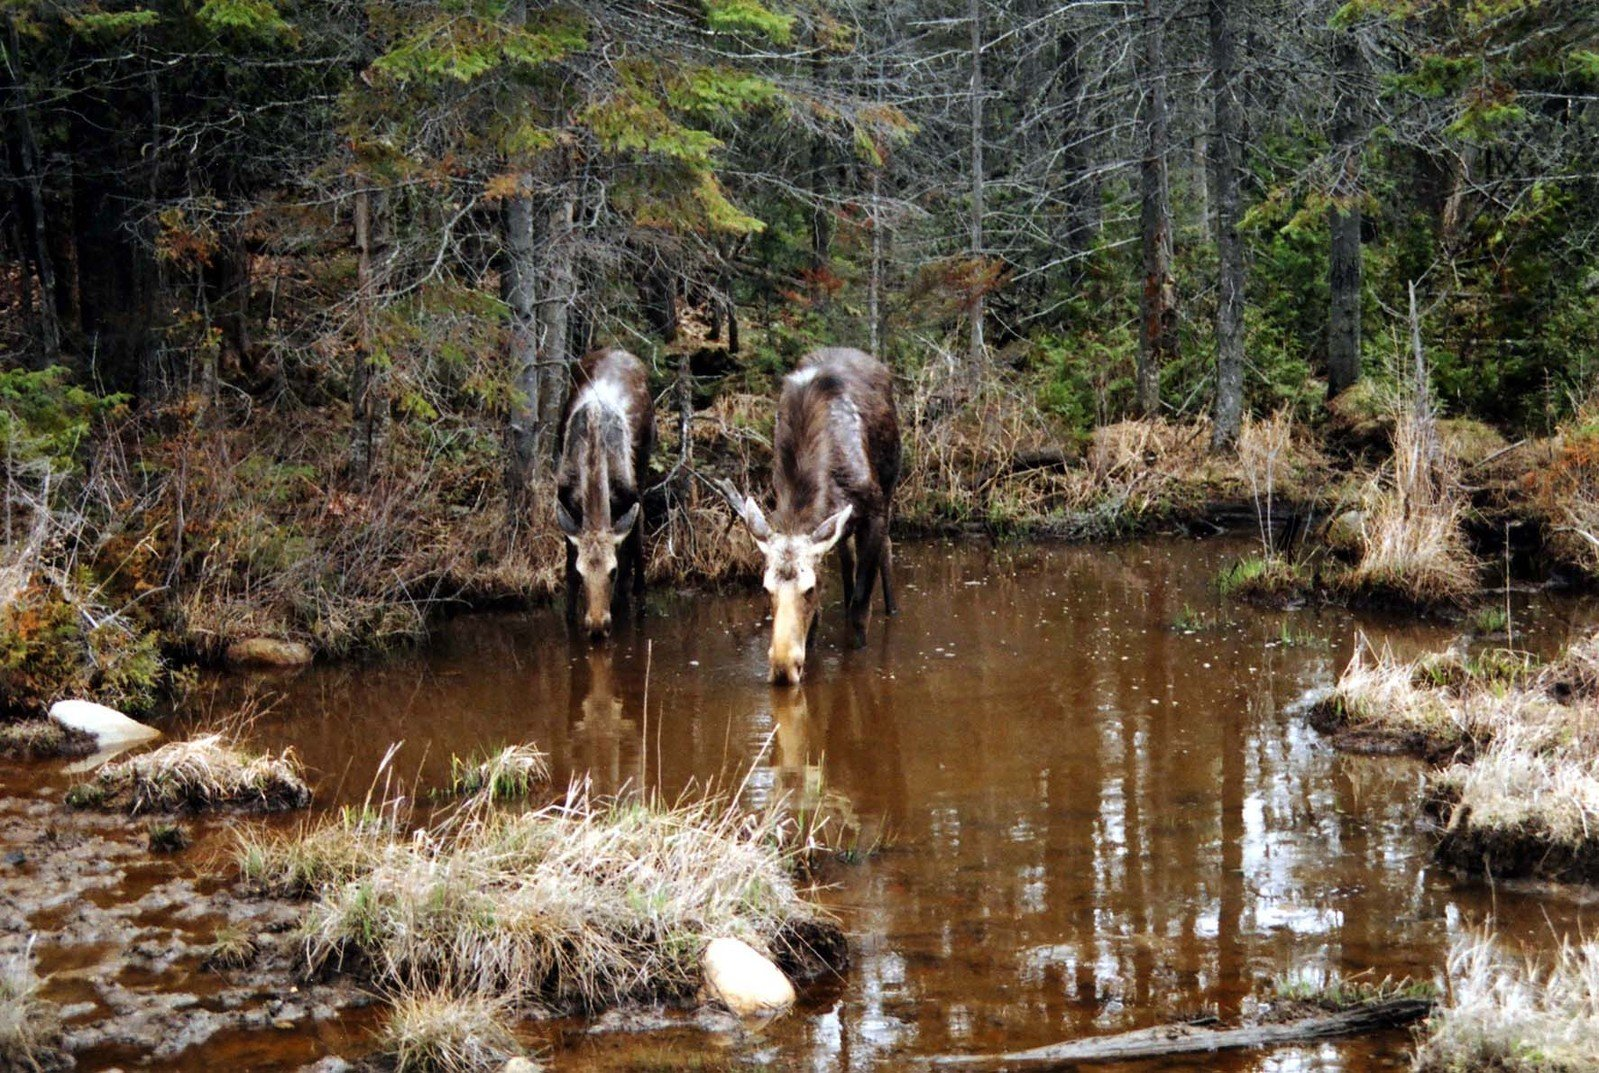 Moose mother and calf